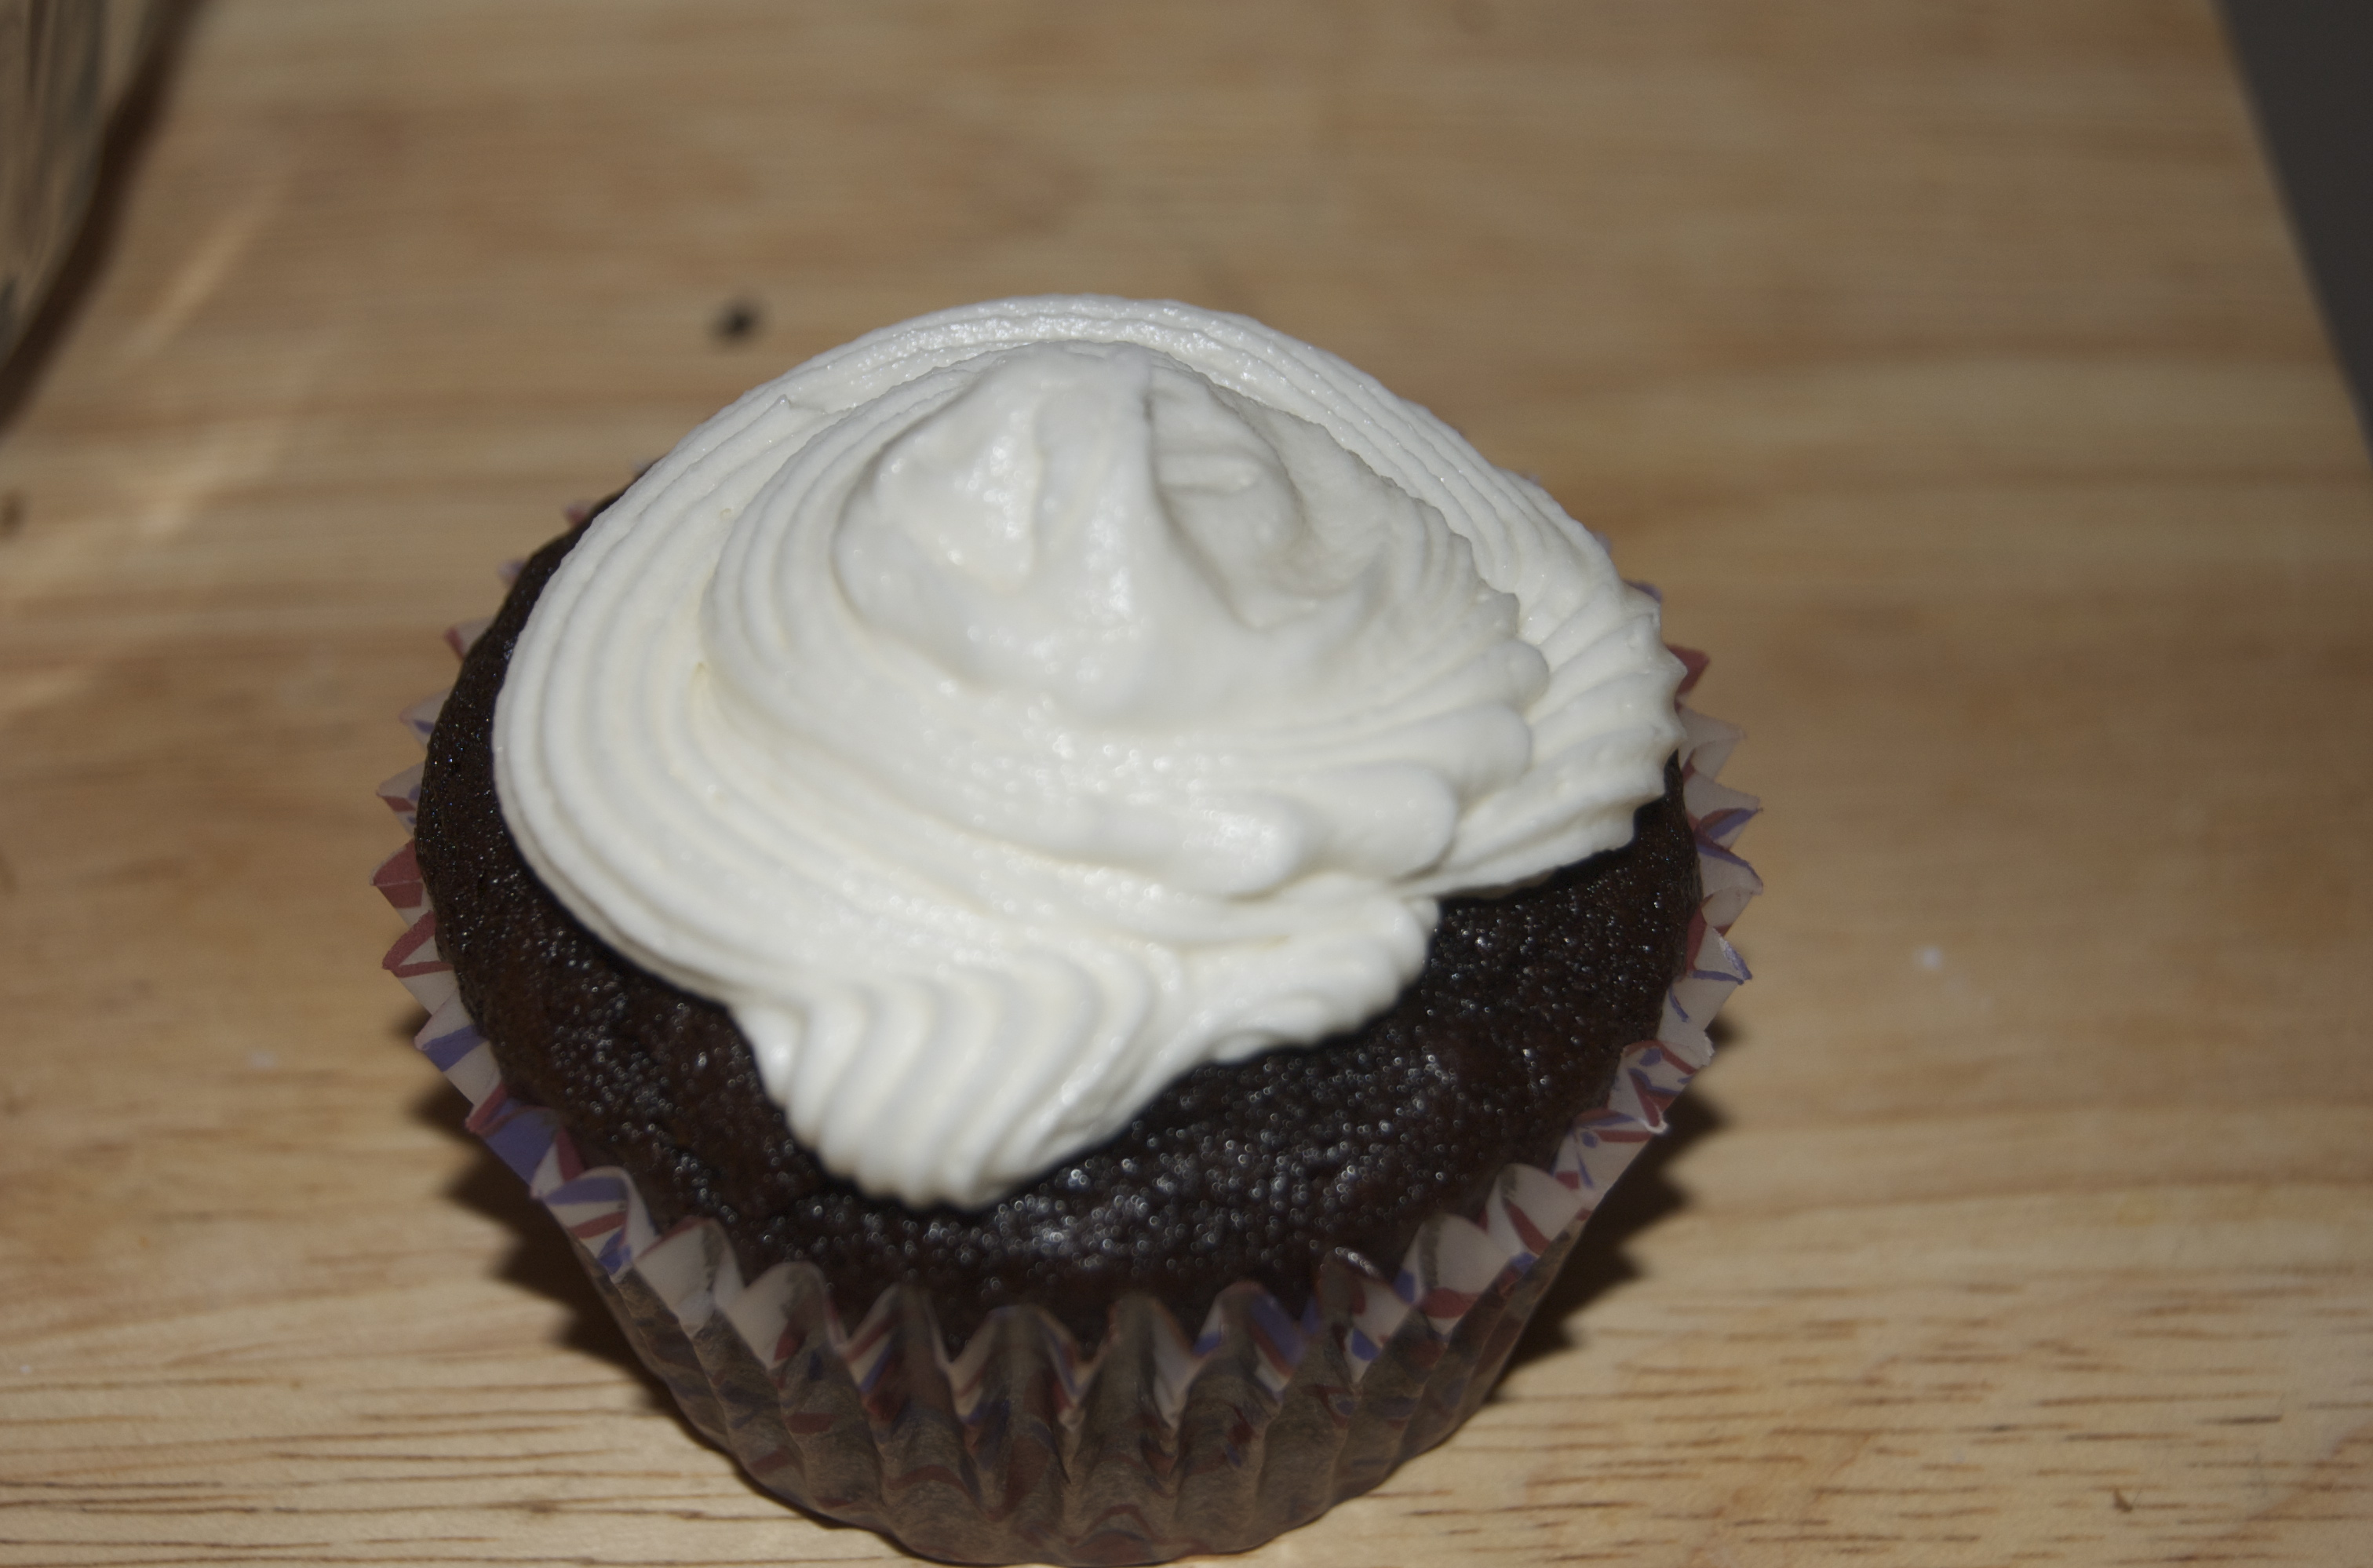 Mandy and Jace » Blog Archive » Vanilla buttercream frosting